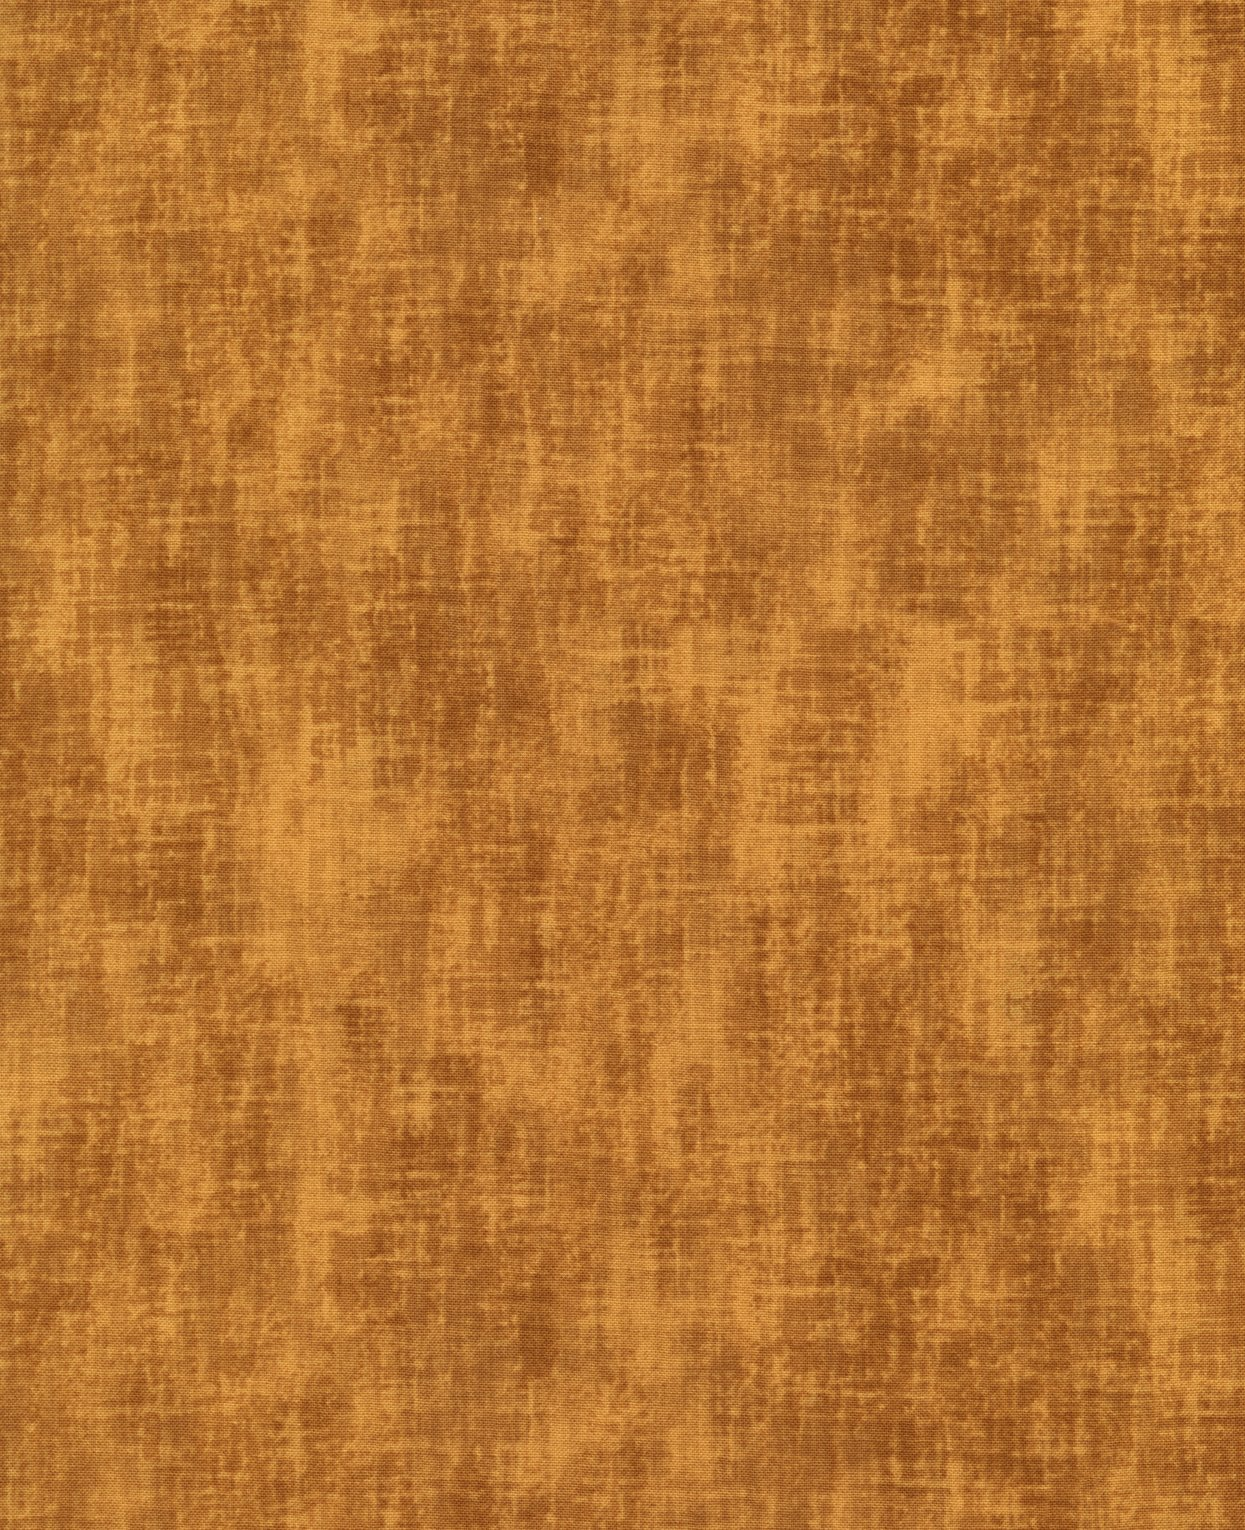 Bountiful Pumpkin Woven - Studio-C3096-Gold